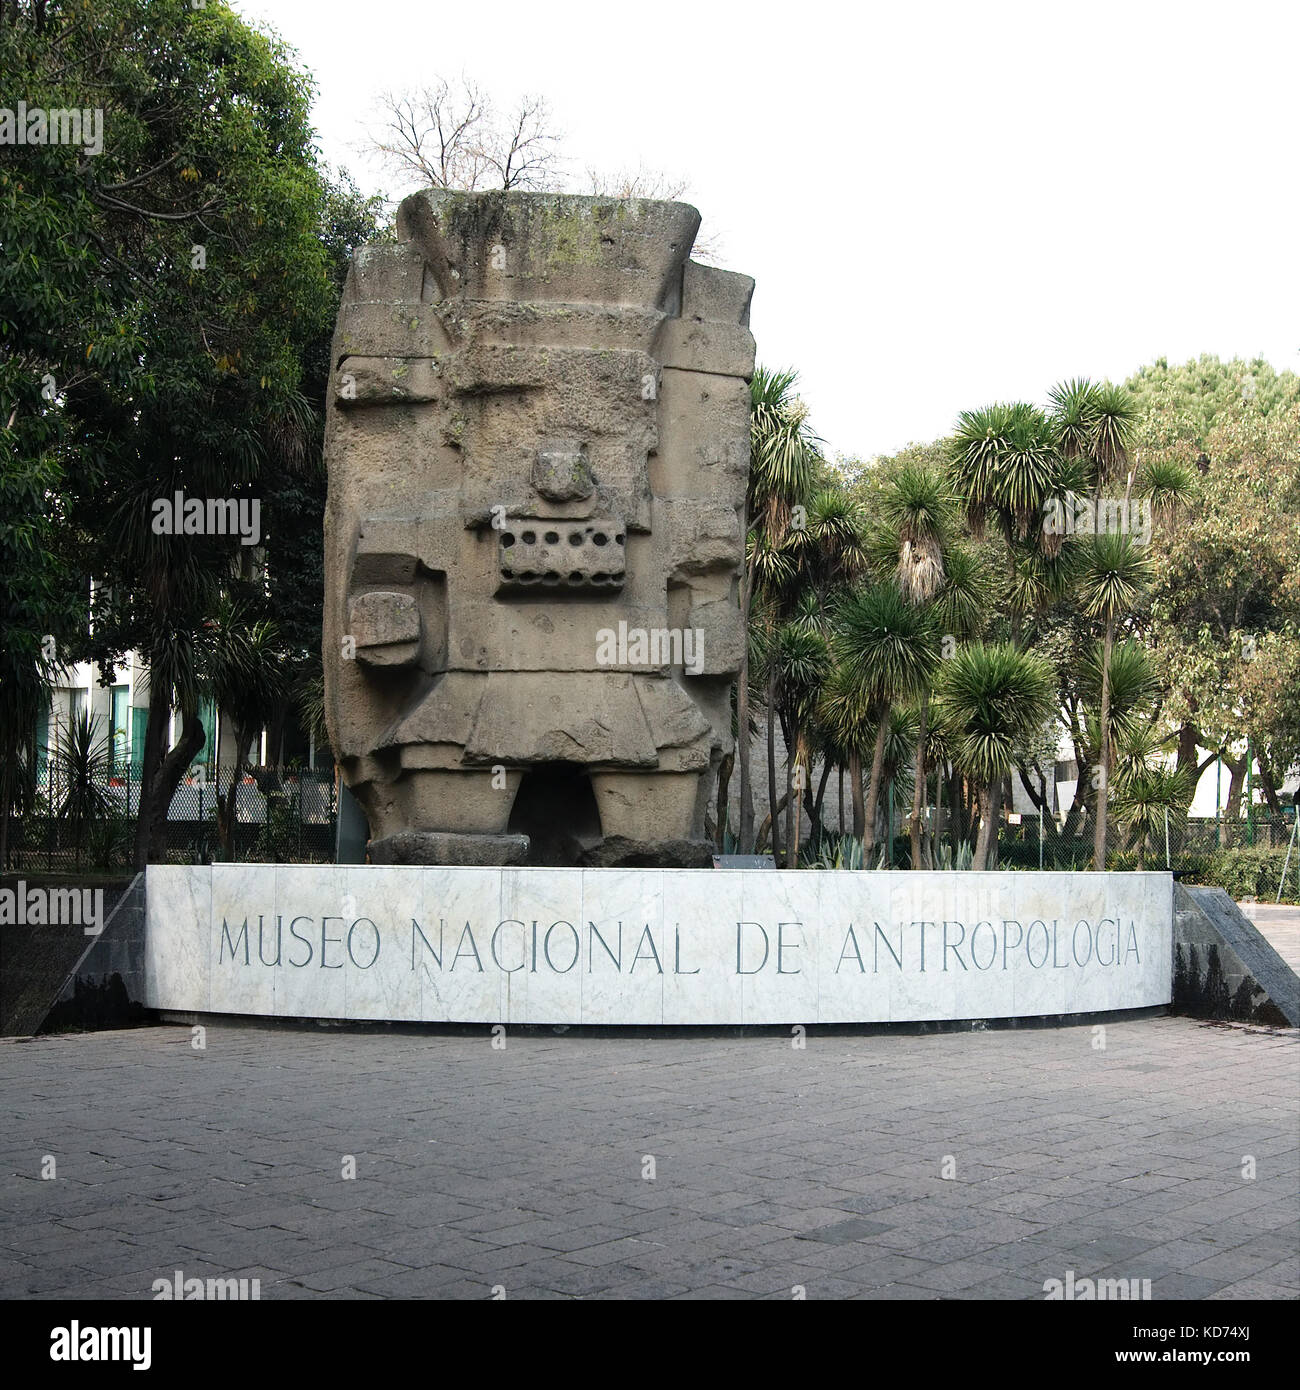 Mexico City, Mexico - 2017: Entrance of the National Museum of Anthropology, the largest and most visited museum - Stock Image